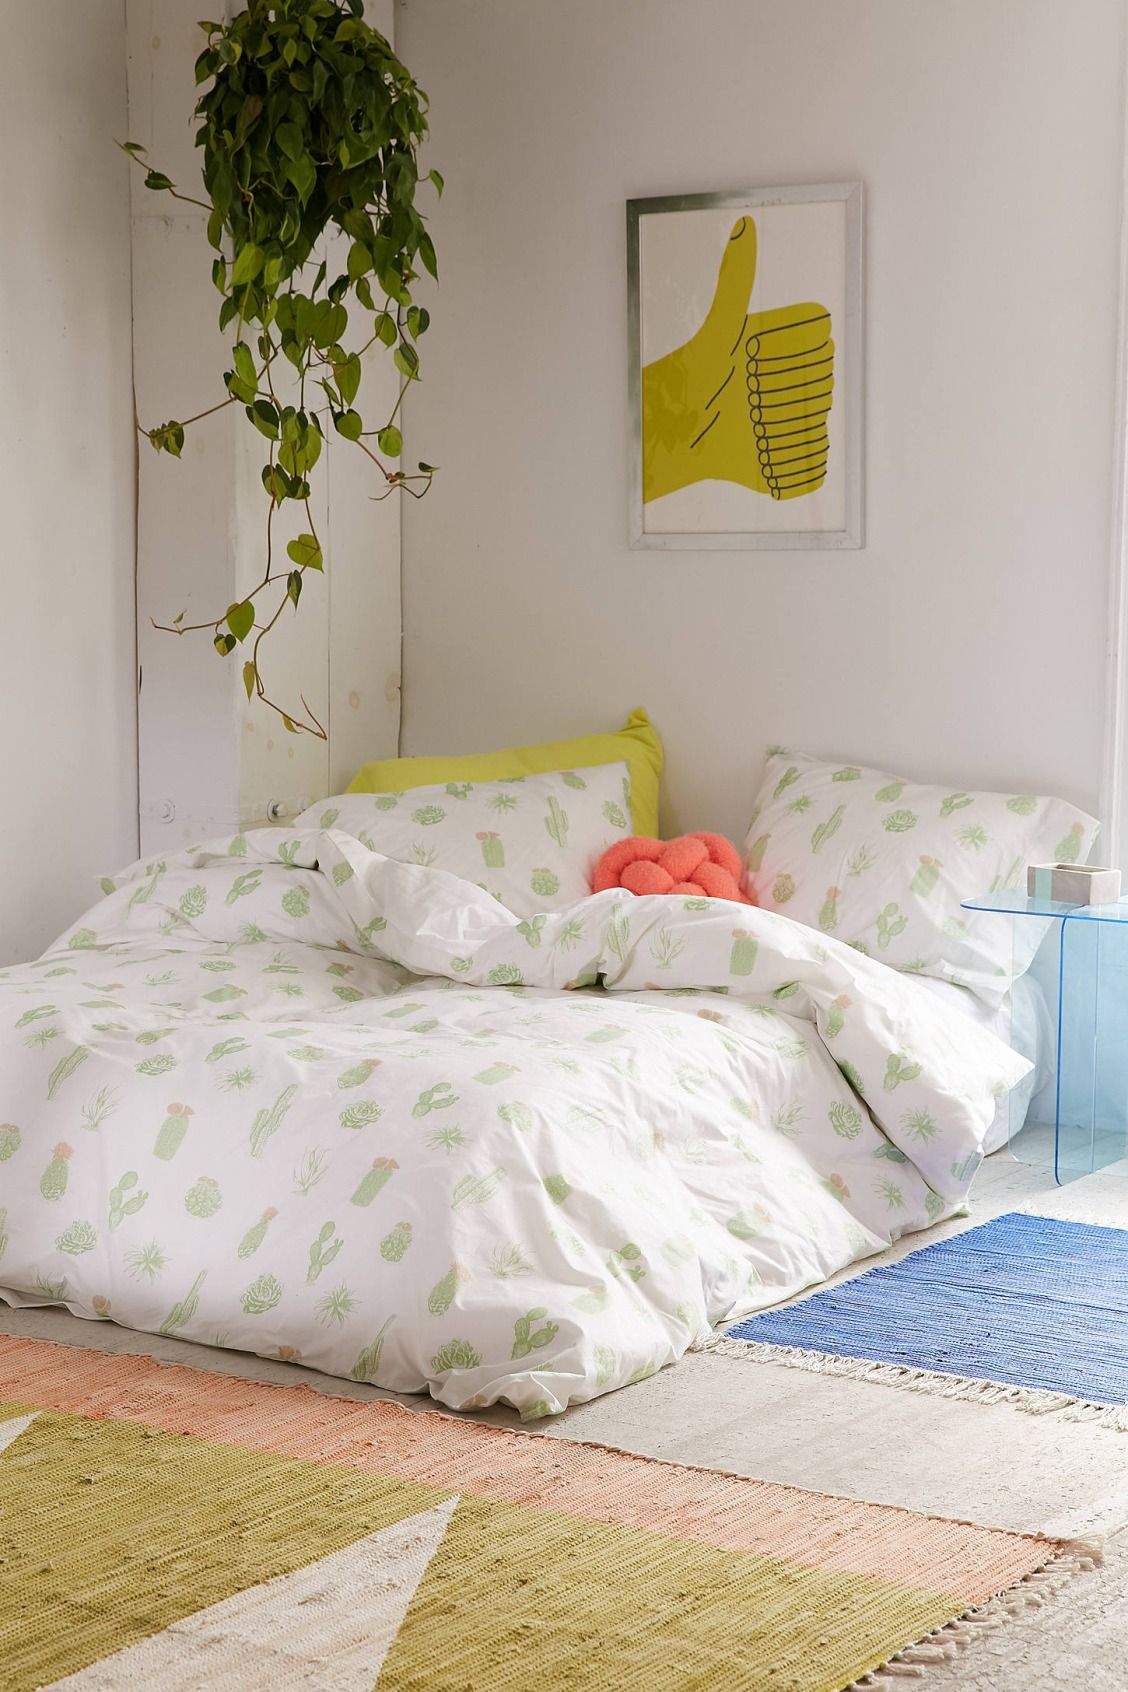 Cactus icon duvet cover ideas para habitaciones for Decoracion hogar habitaciones